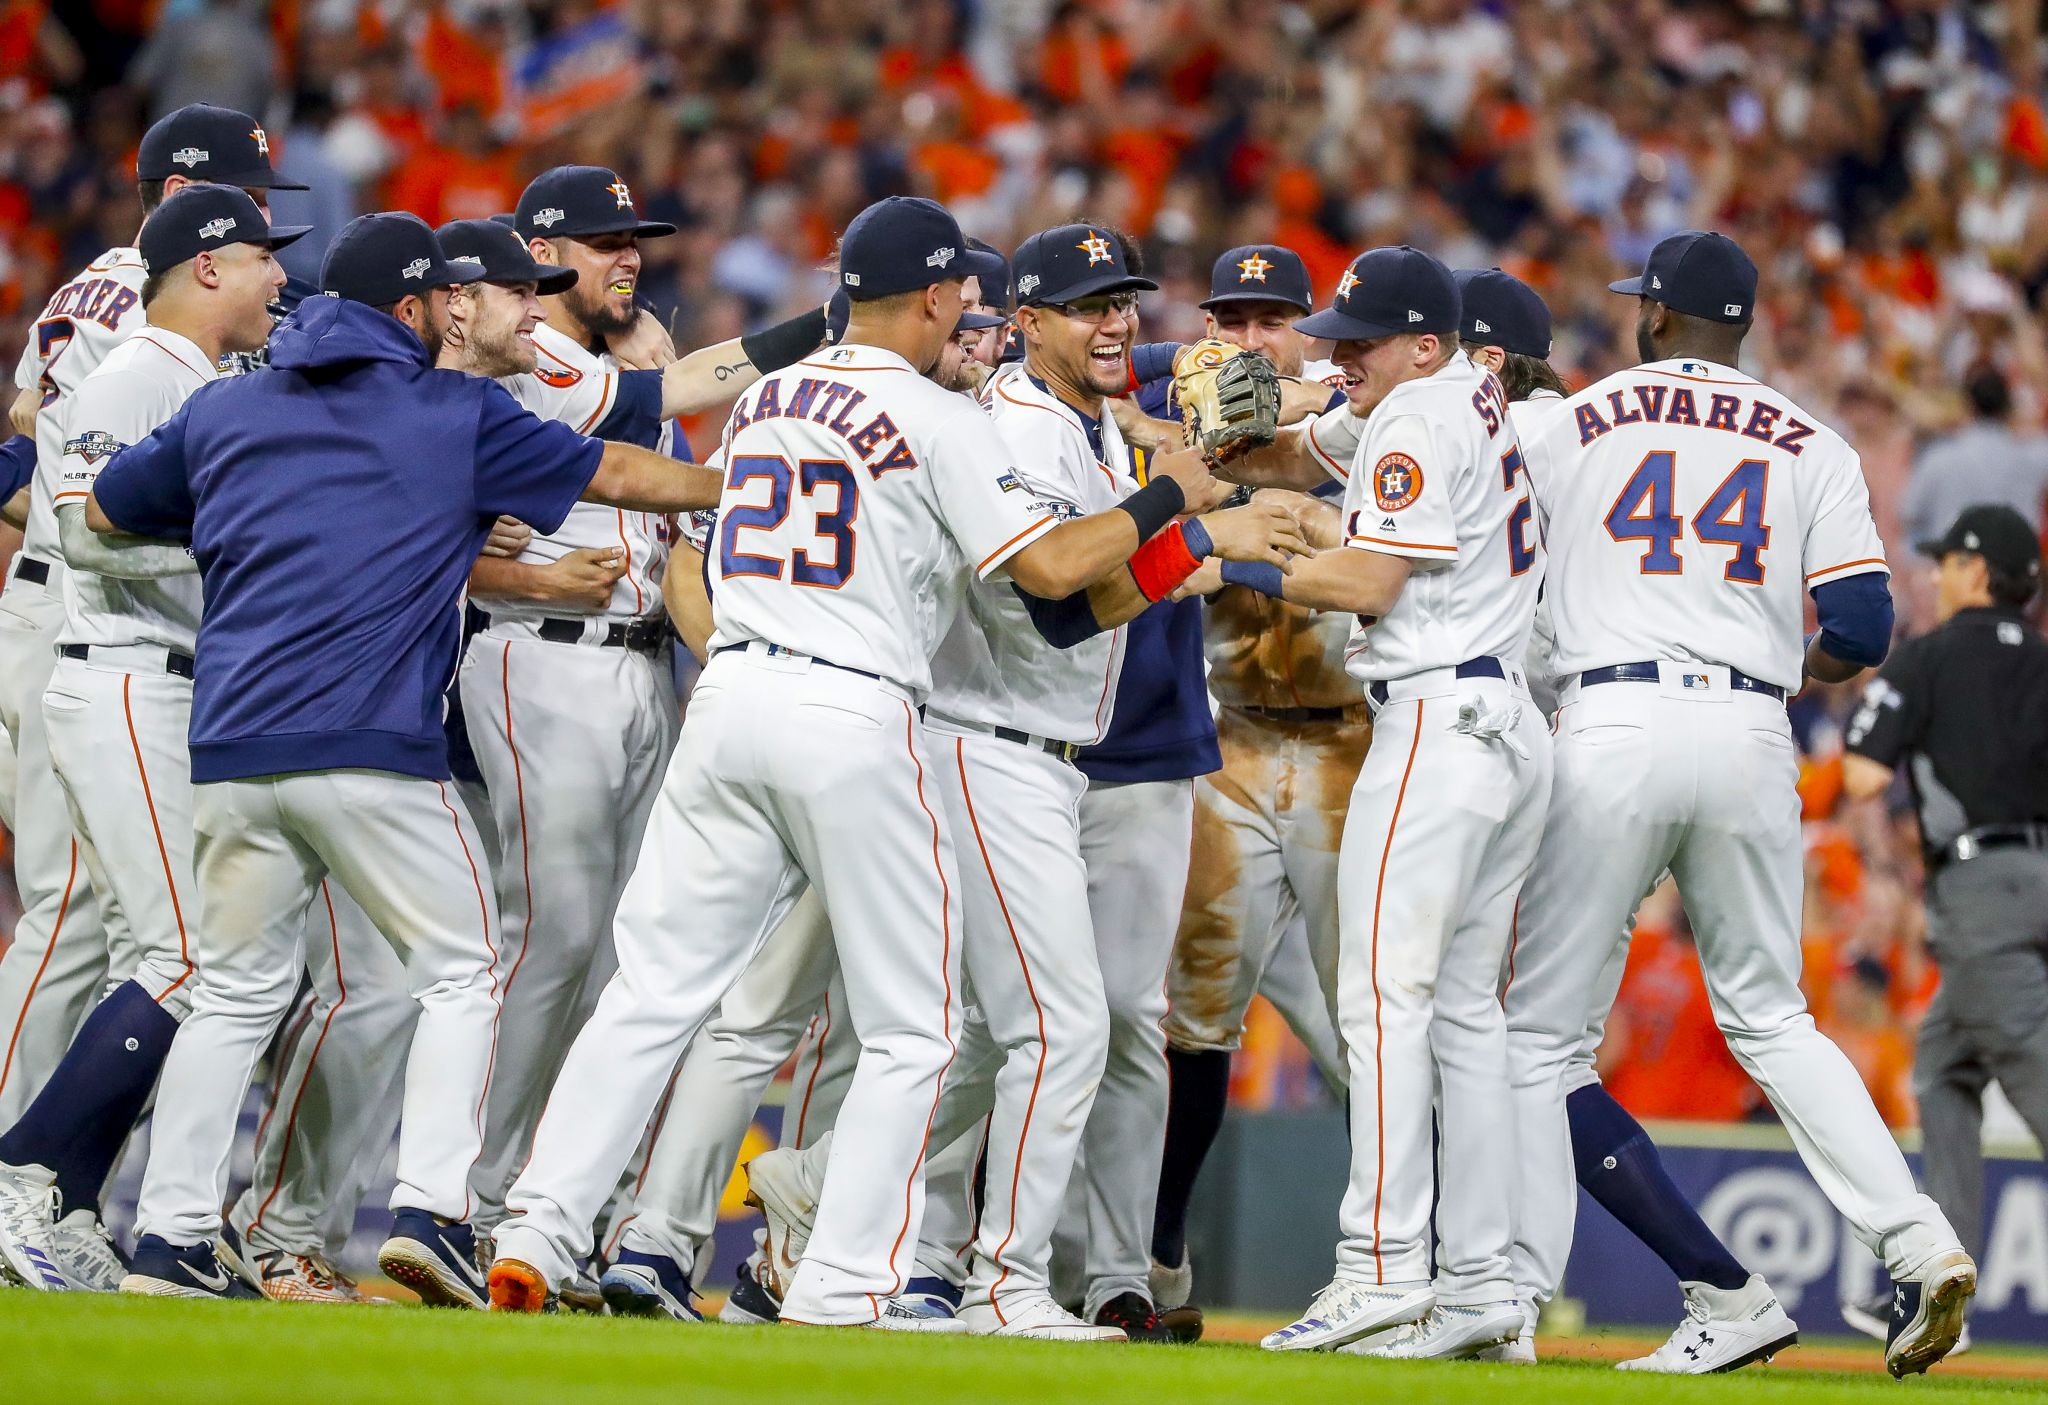 Ultimate success fleeting for teams with MLB's best record